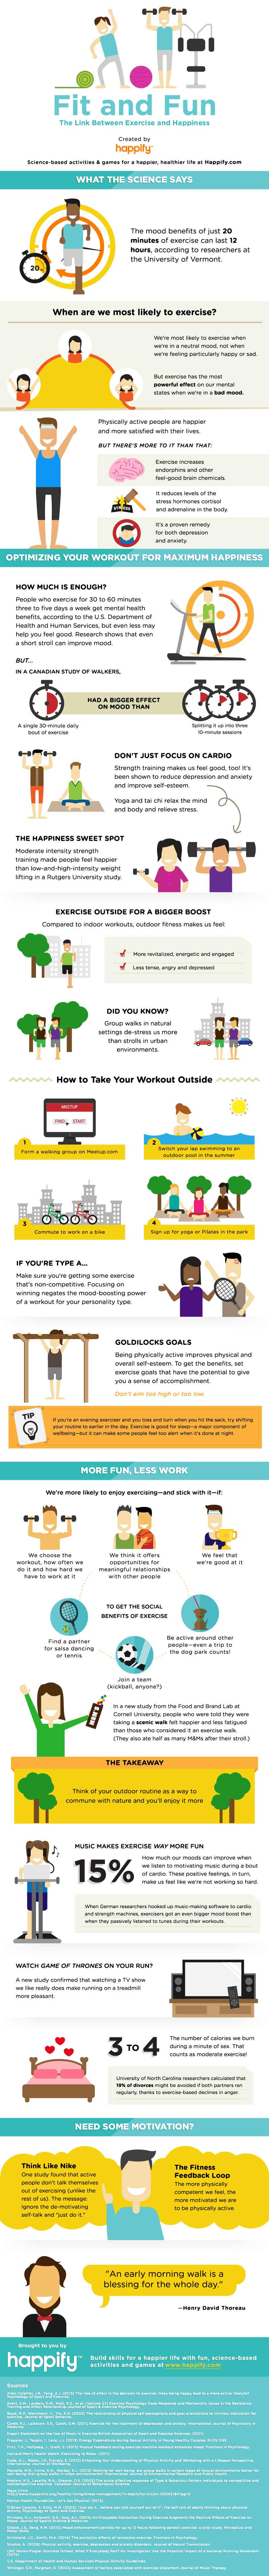 fit-fun-infographic